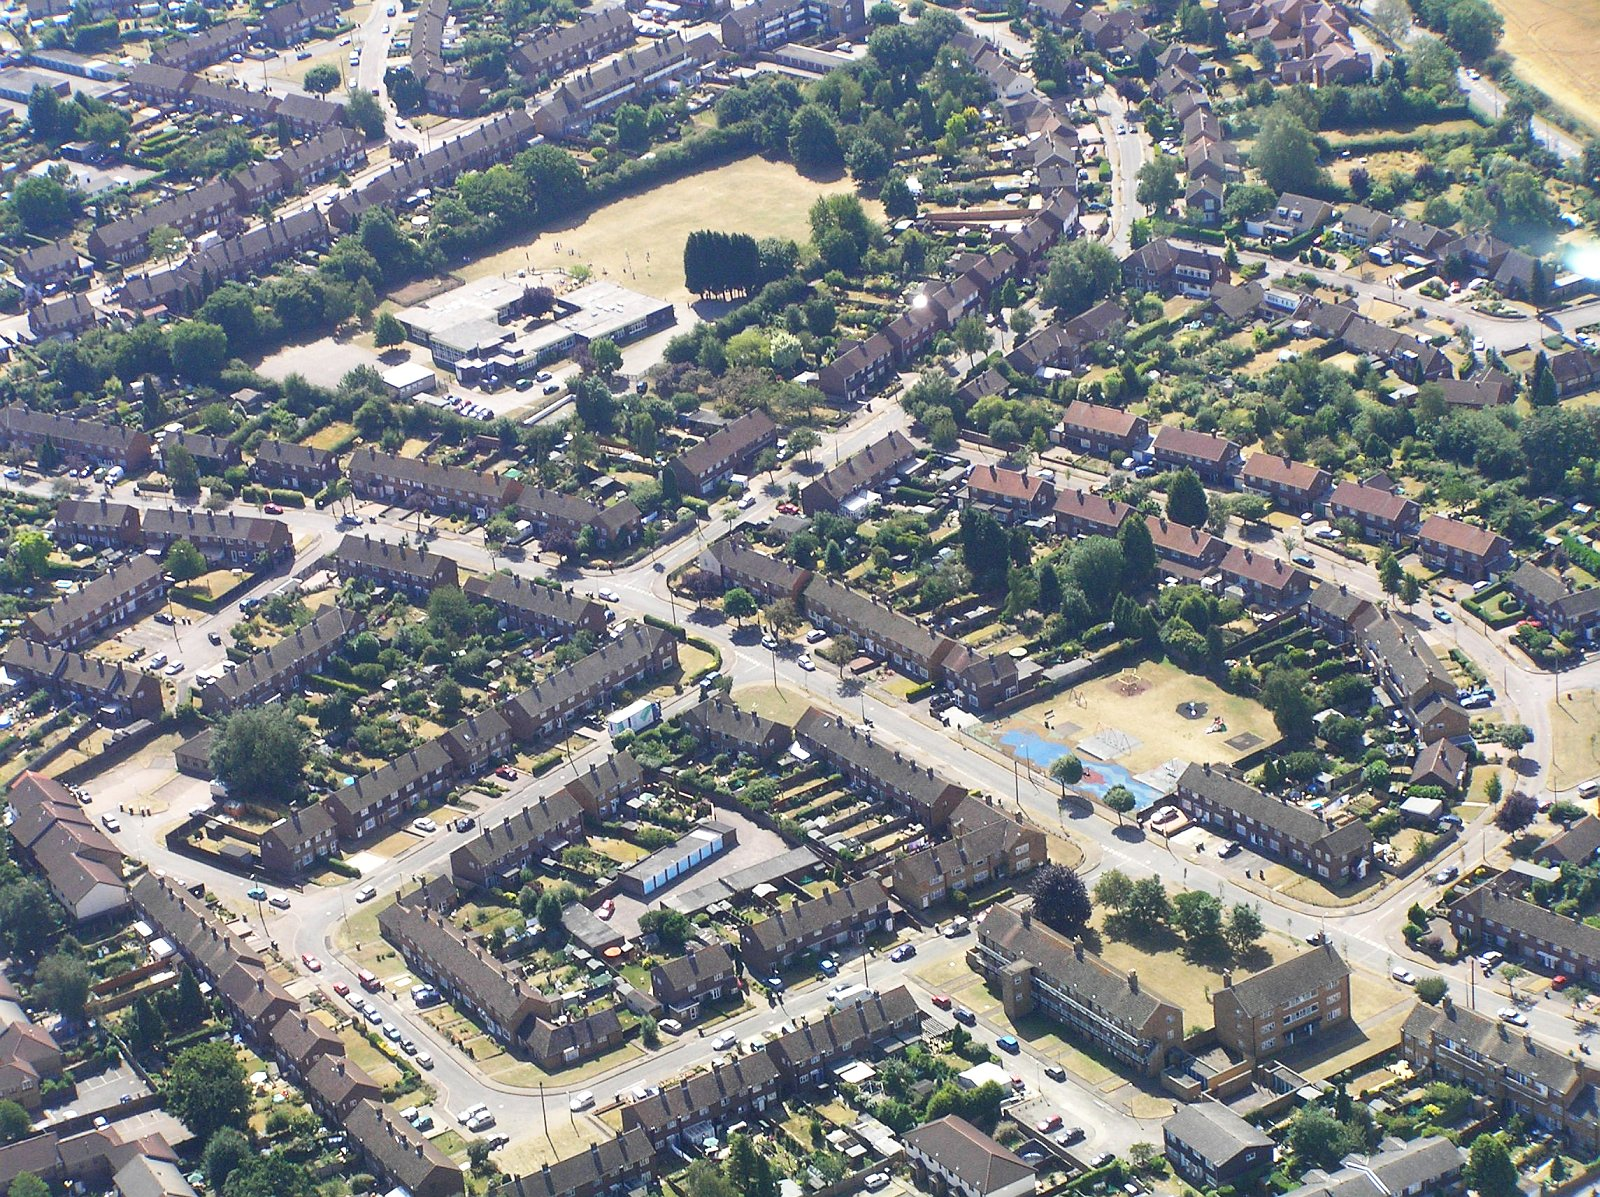 Large photo of Hertford from the air